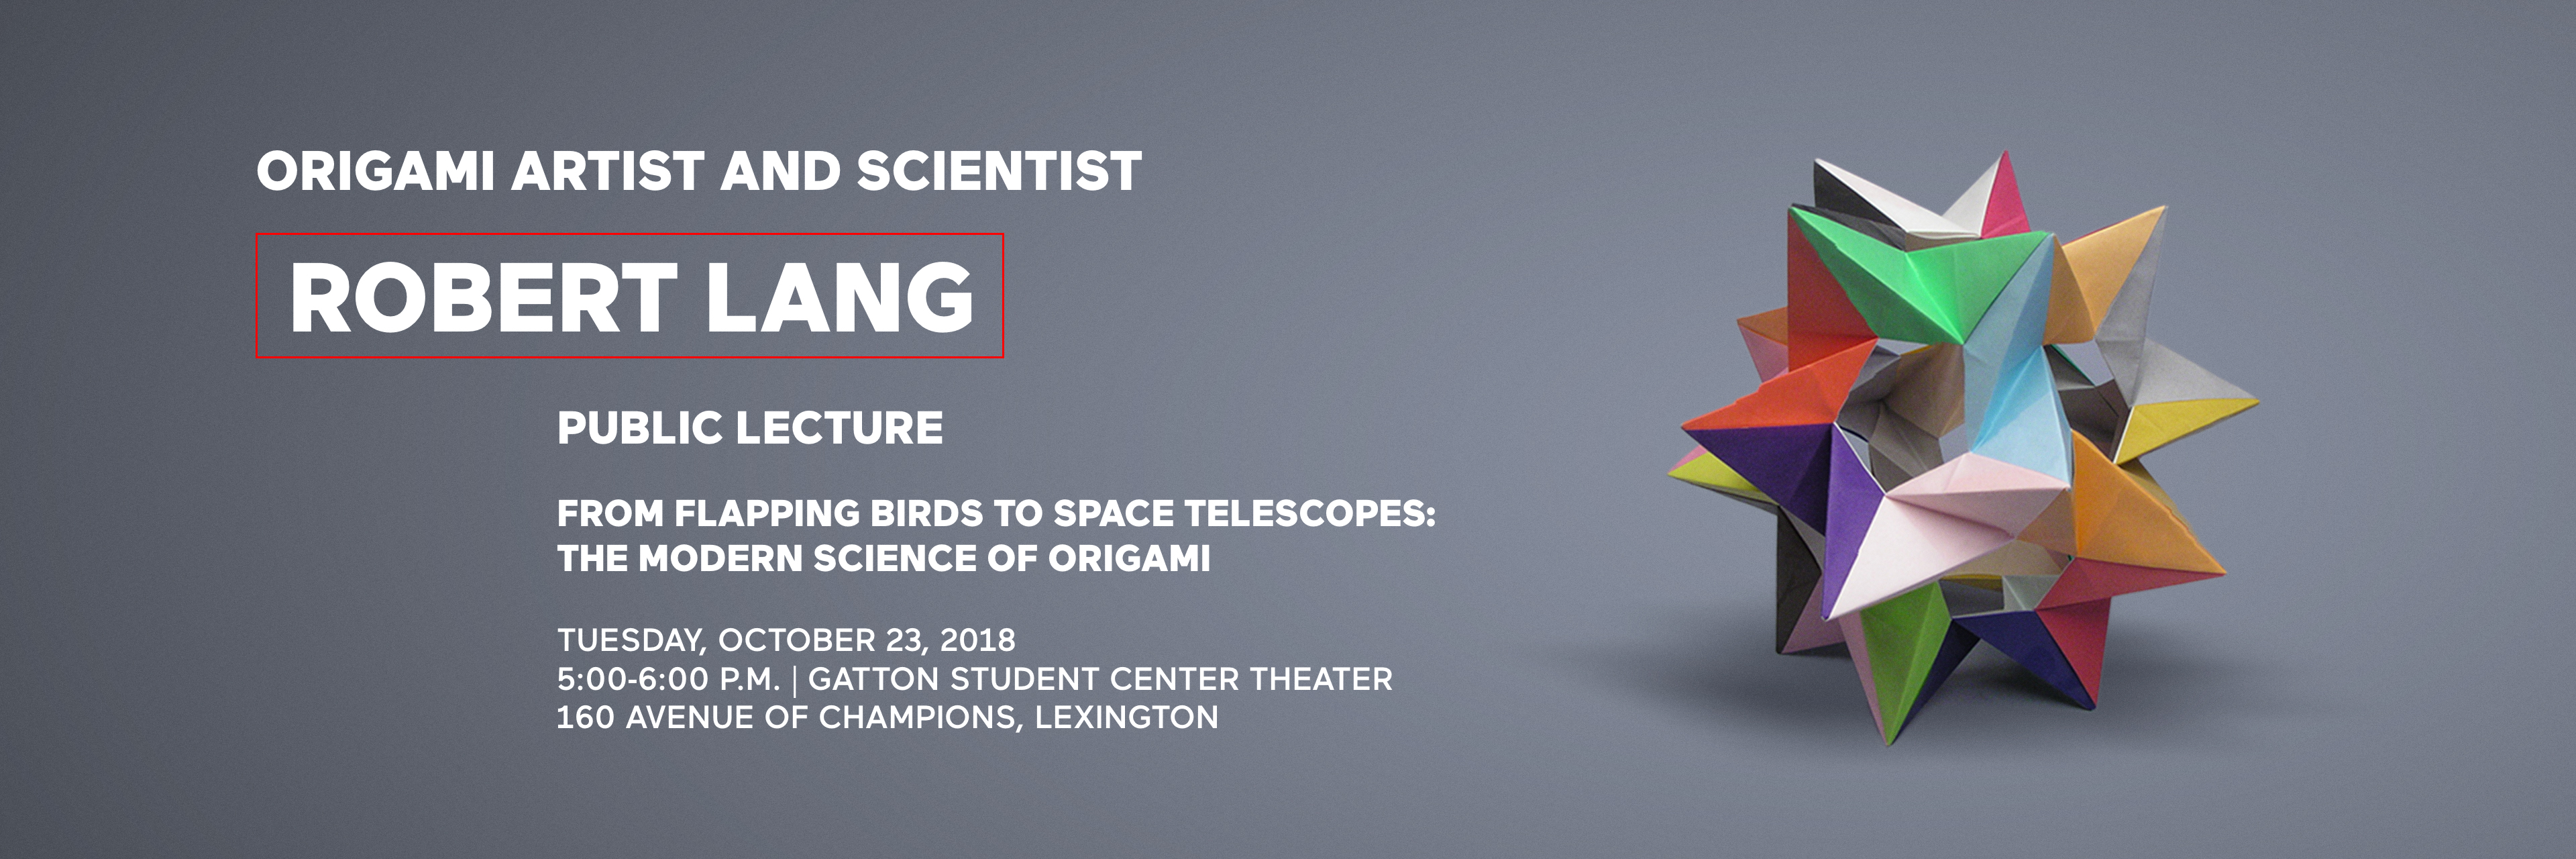 University Of Kentucky Majors >> From Flapping Birds to Telescopes: The Modern Science of ...